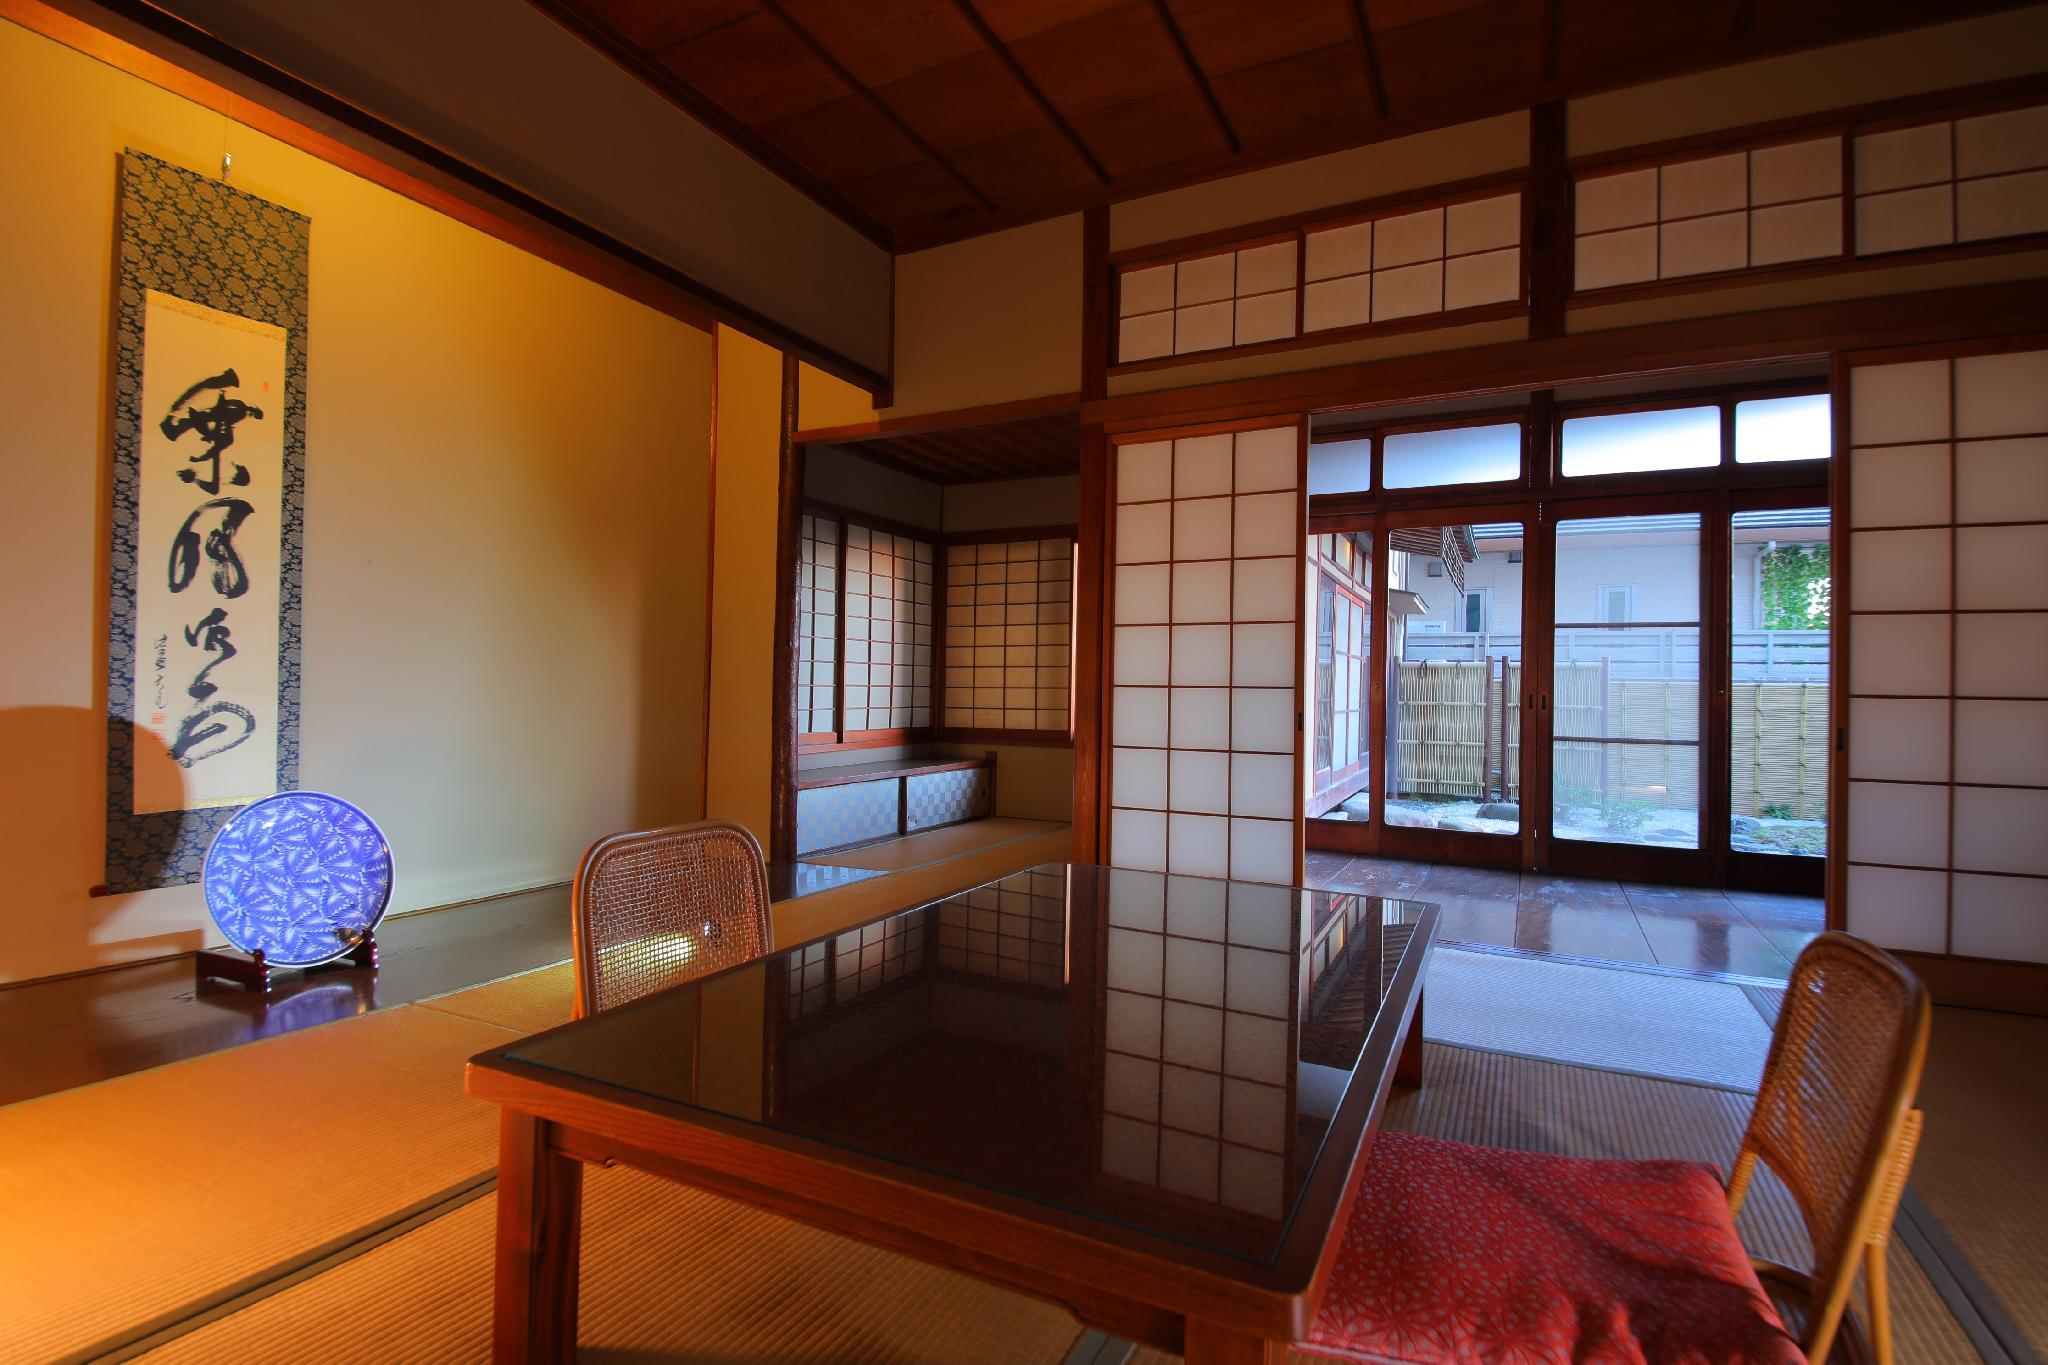 Deluxe Japanese Style Private Room